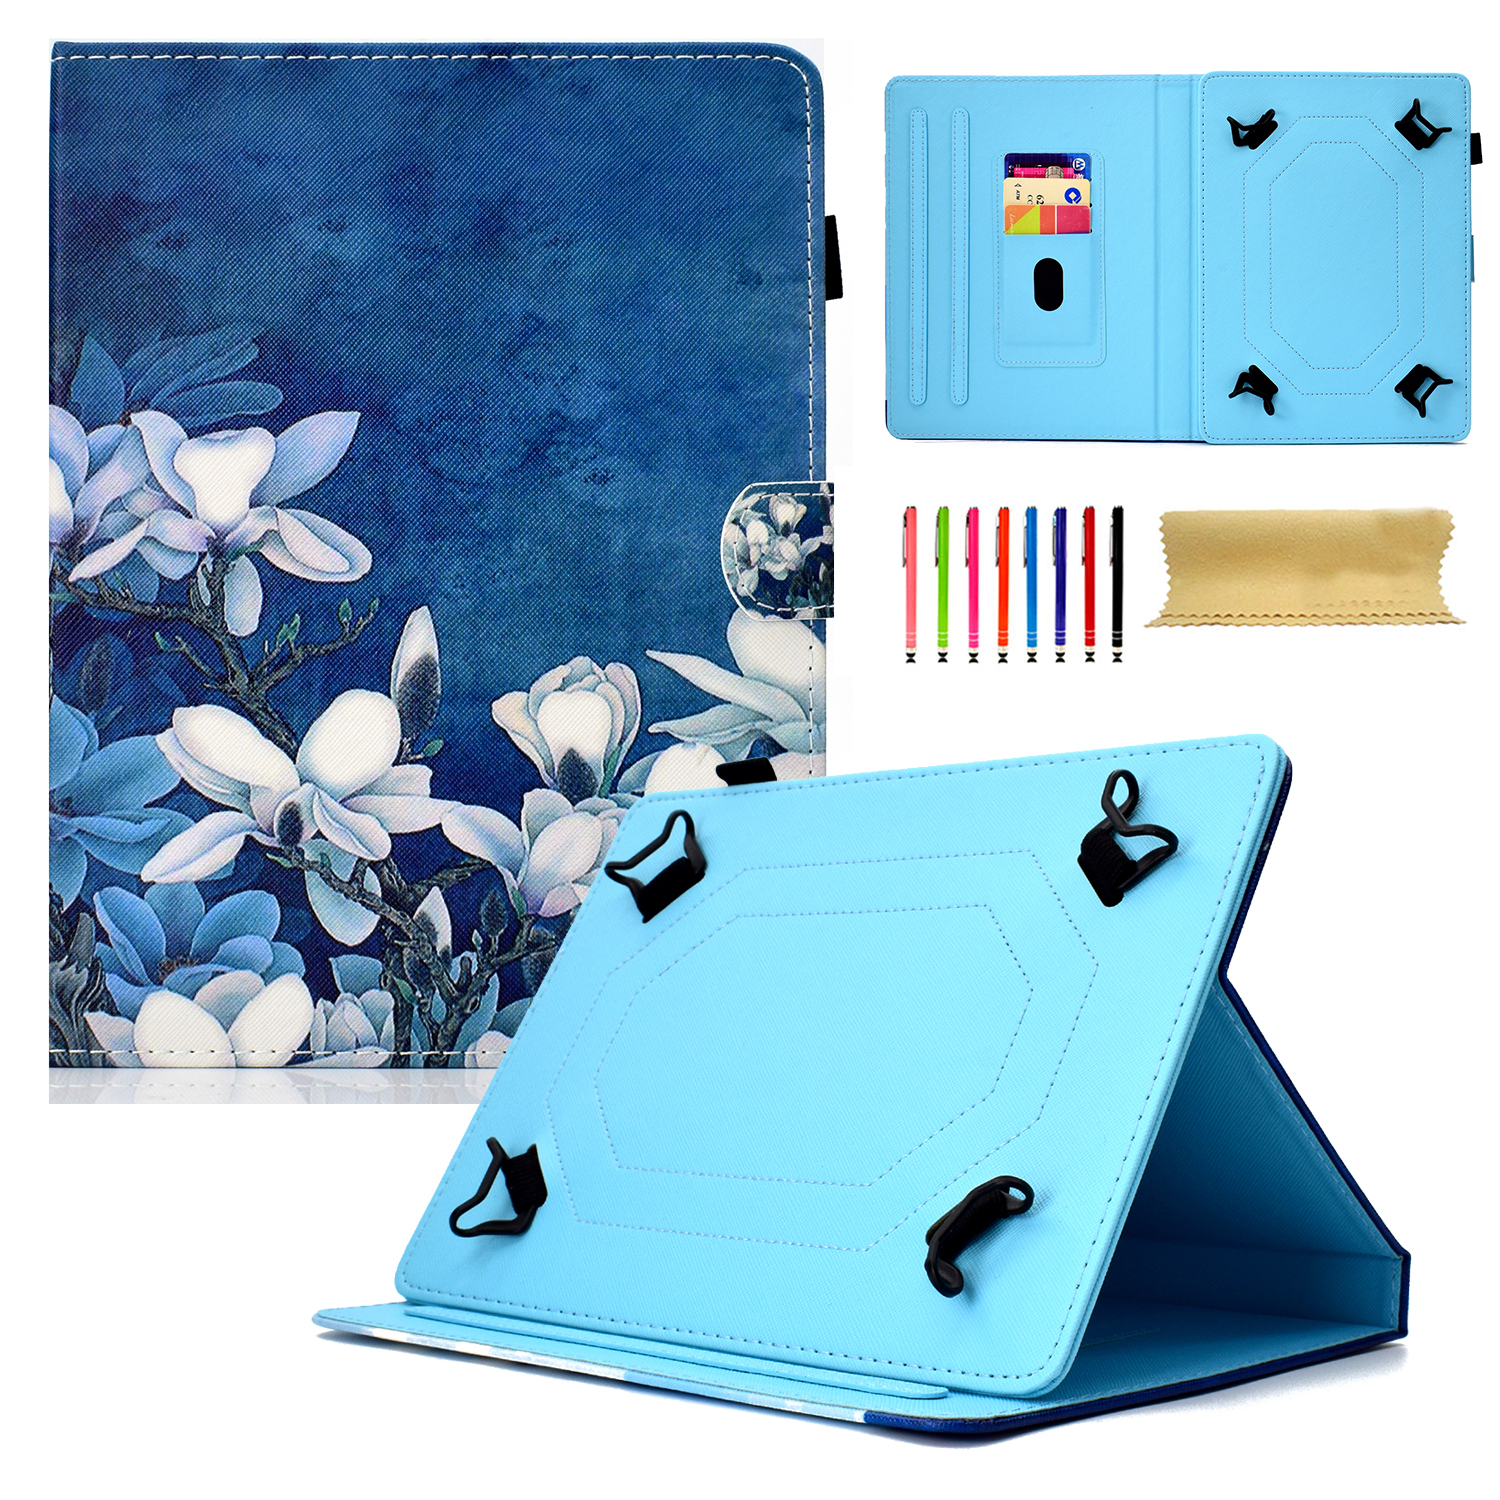 """Goodest Universal 8 Inch Tablet Case, Slim Fit Folio Protective Stand Wallet Cover for 7.5-8.5"""" Tablet 8"""" Touchscreen/iPad Mini/Galaxy Tab A/Fire HD 8/RCA/Chrome Nextbook iView, Flower"""